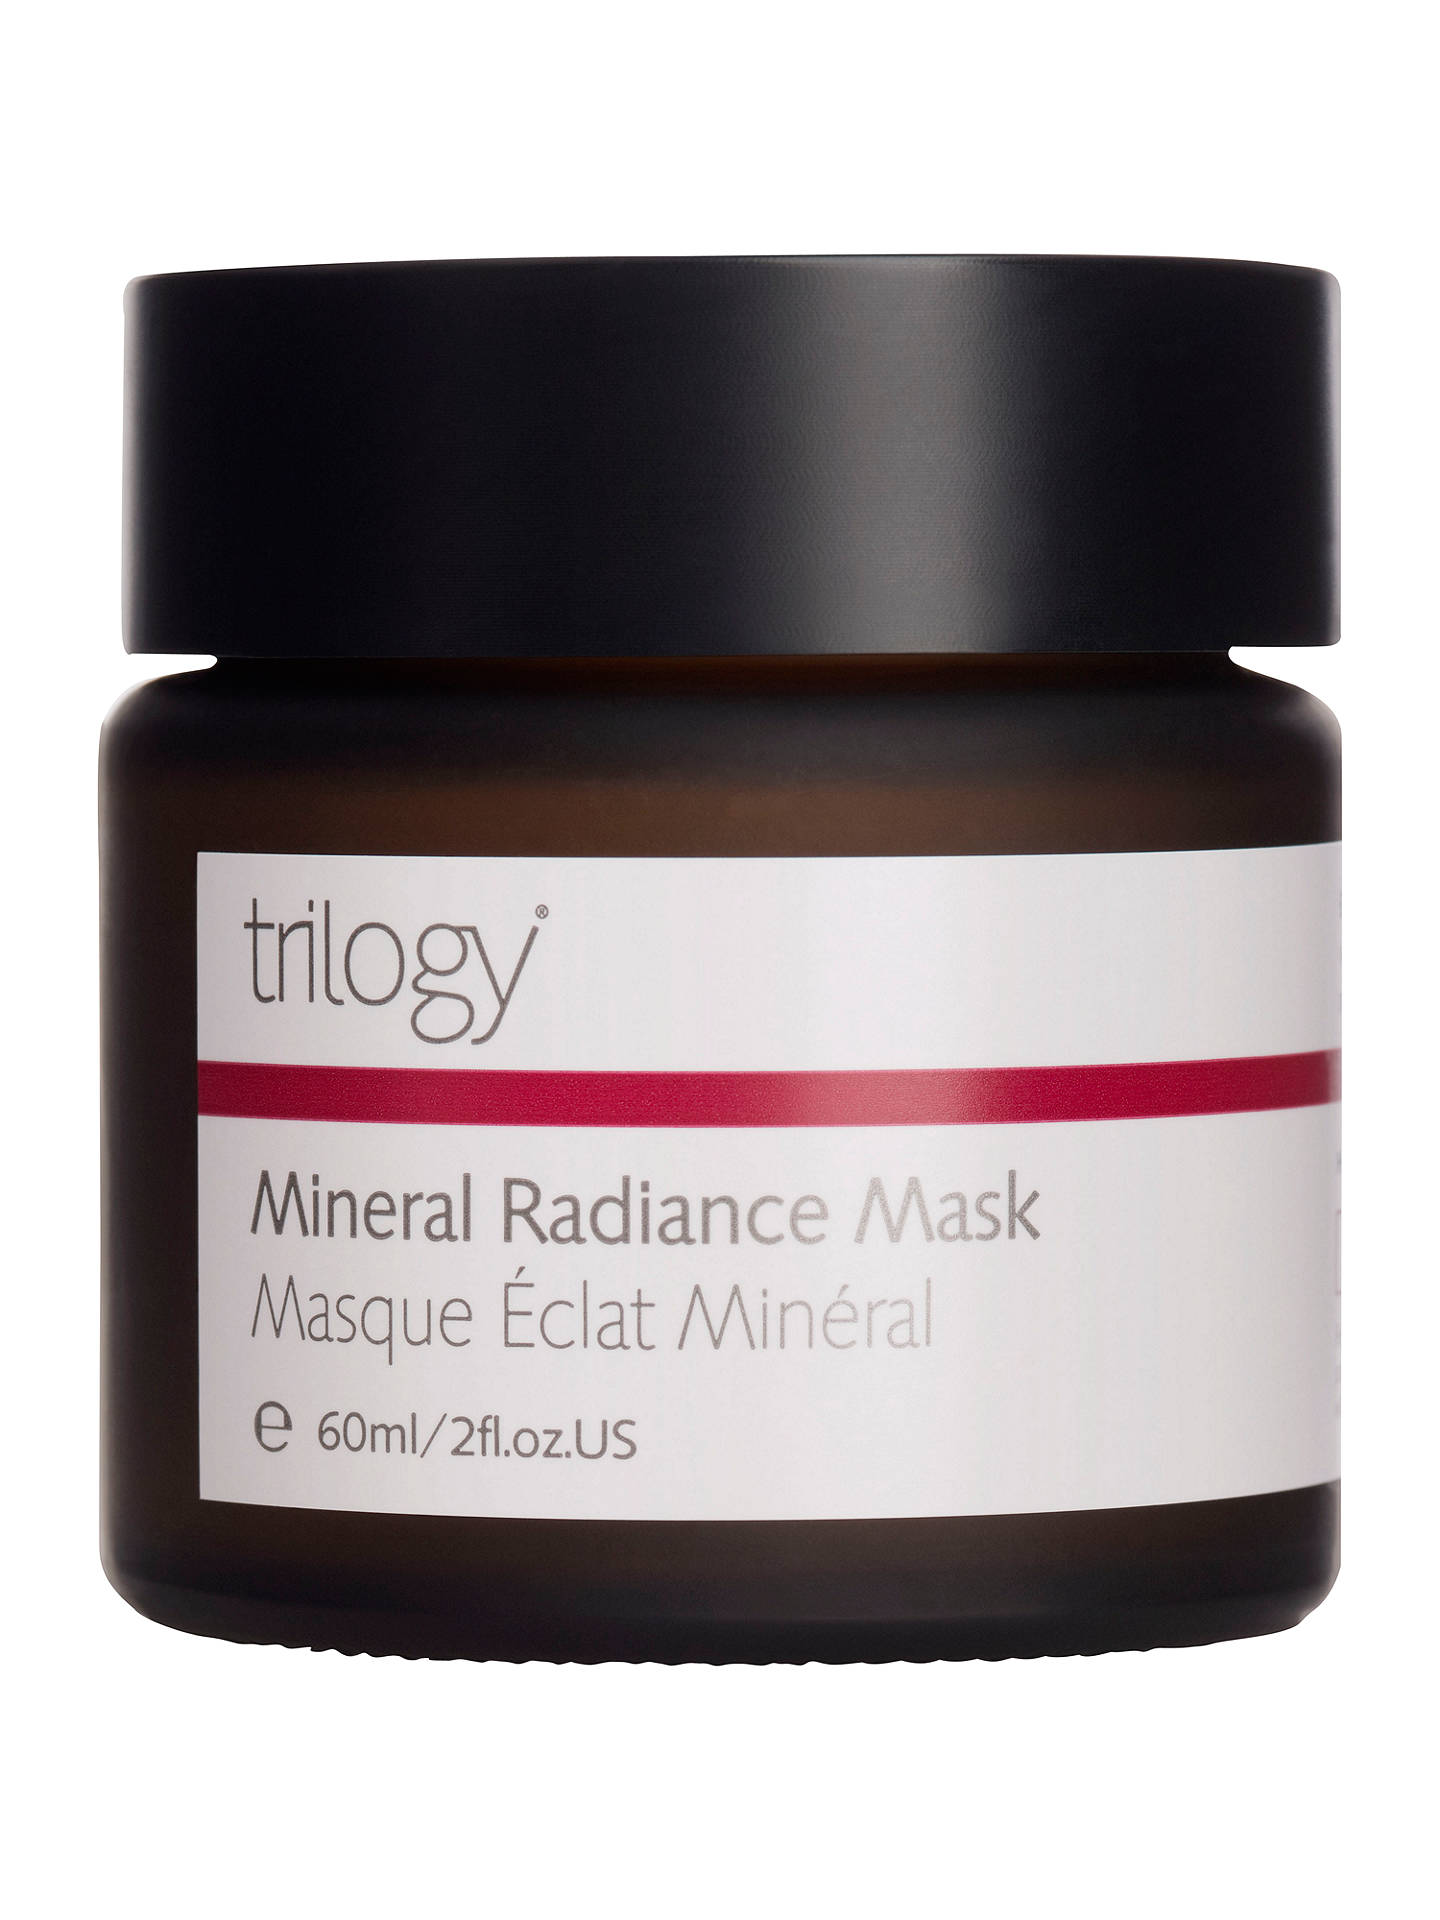 BuyTrilogy Mineral Radiance Mask, 60ml Online at johnlewis.com